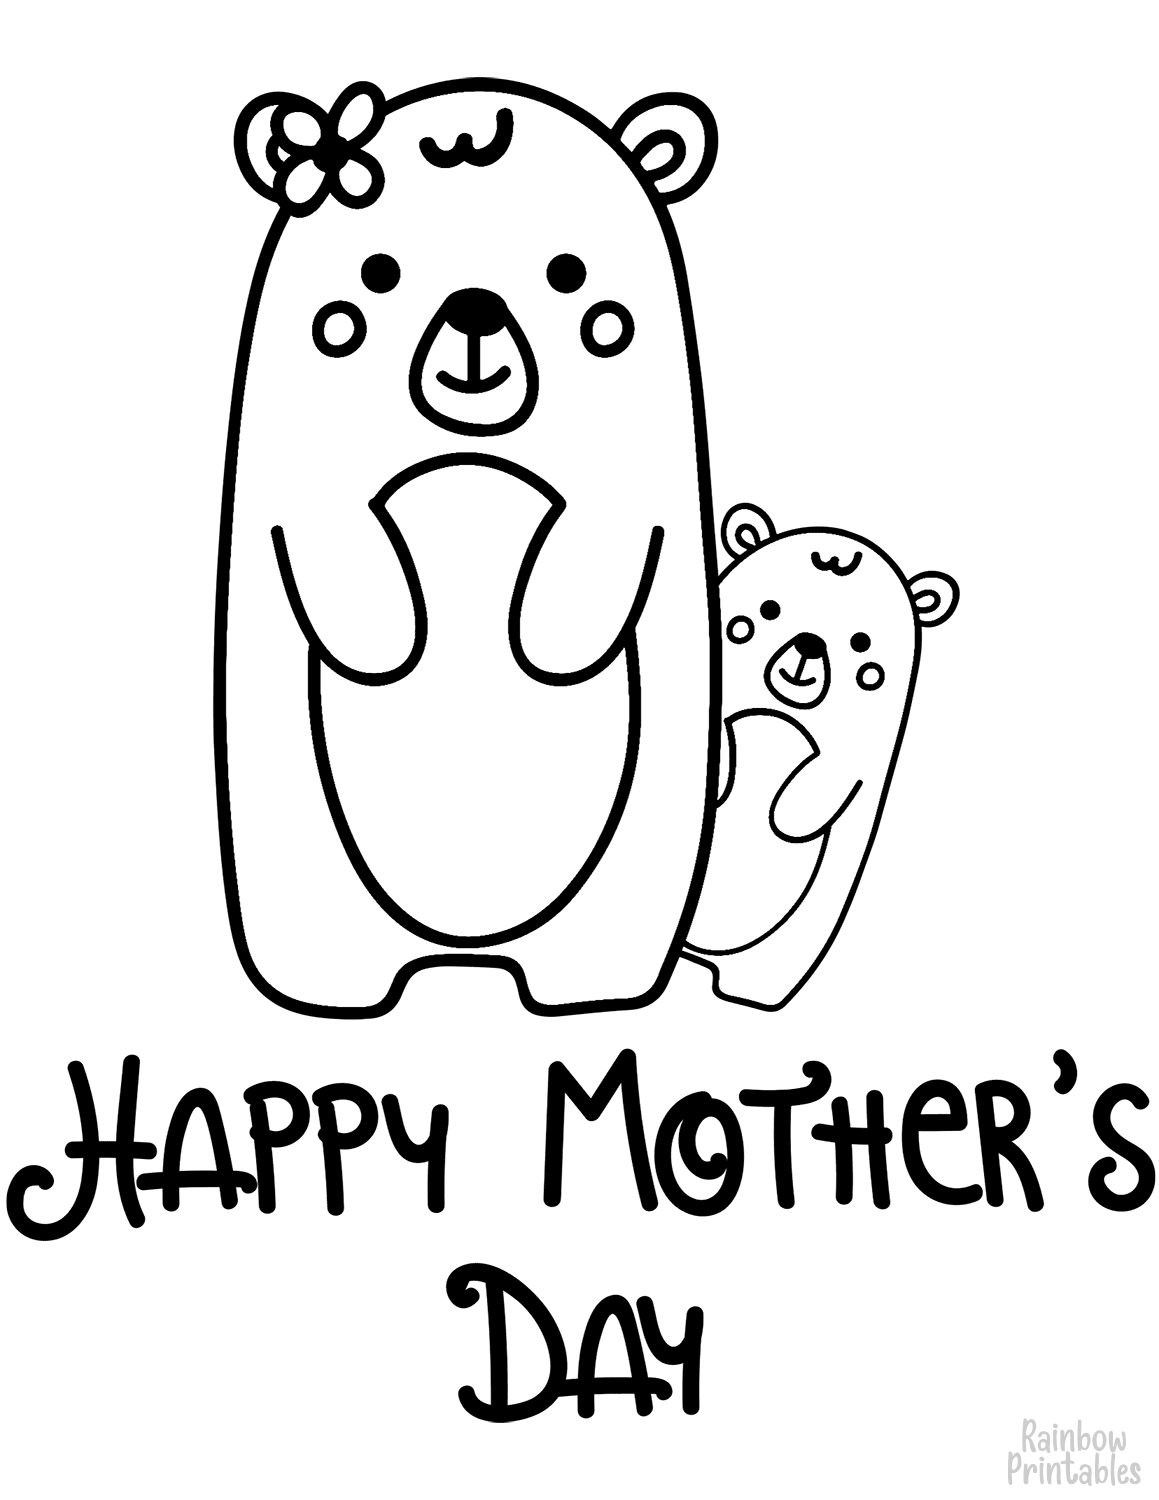 Happy Mothers Day BEar Mom and Baby bear cub Clipart Coloring Pages for Kids Adults Art Activities Line Art